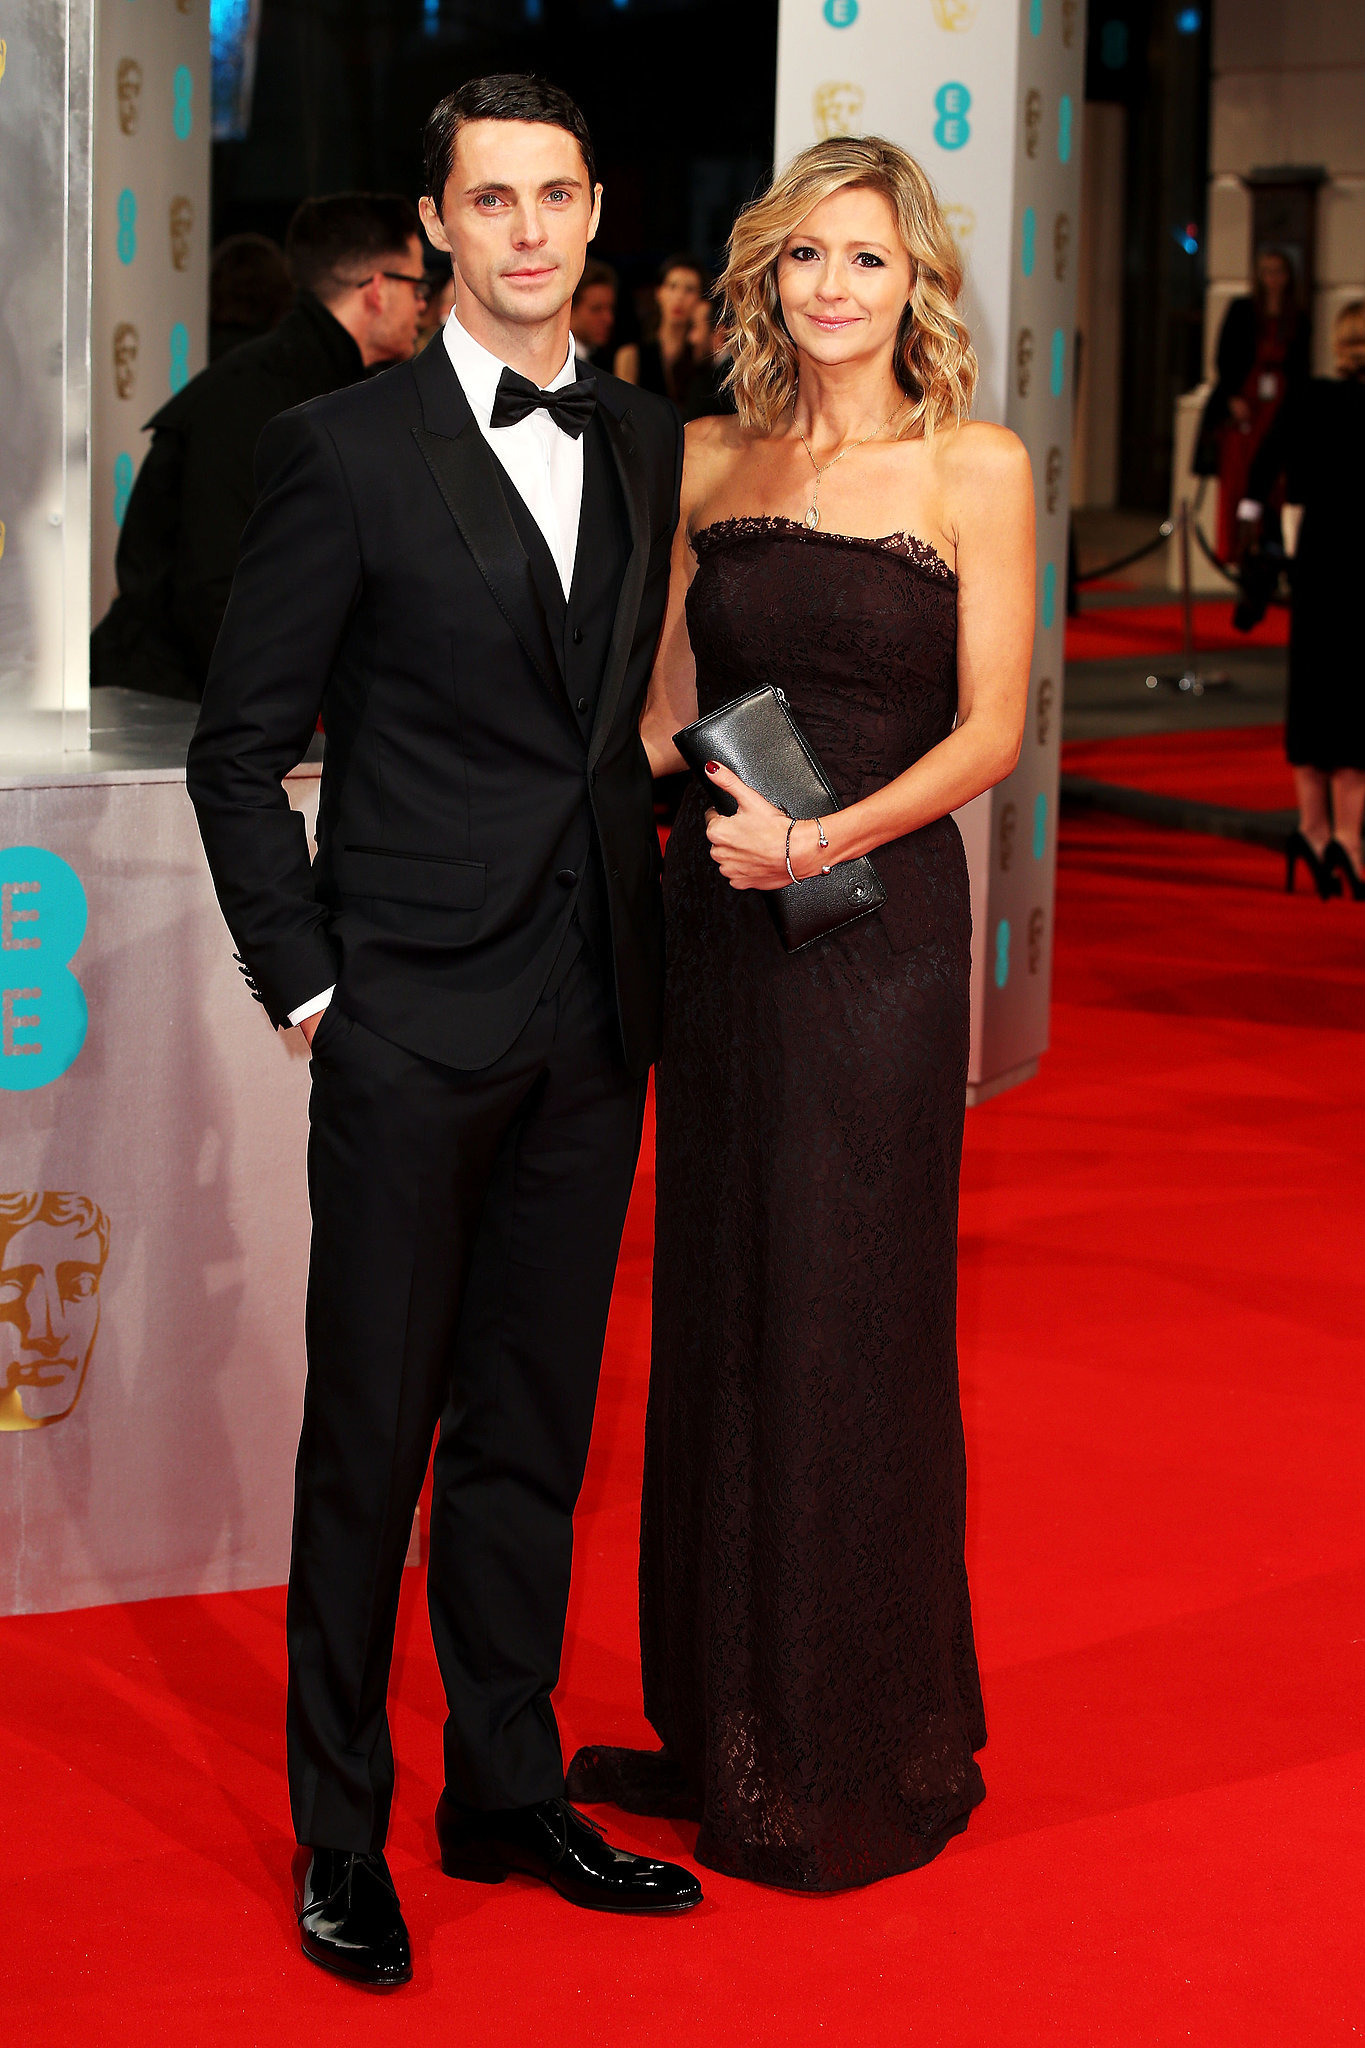 Matthew Goode And Sophie Dymoke Stars Go All Out On The